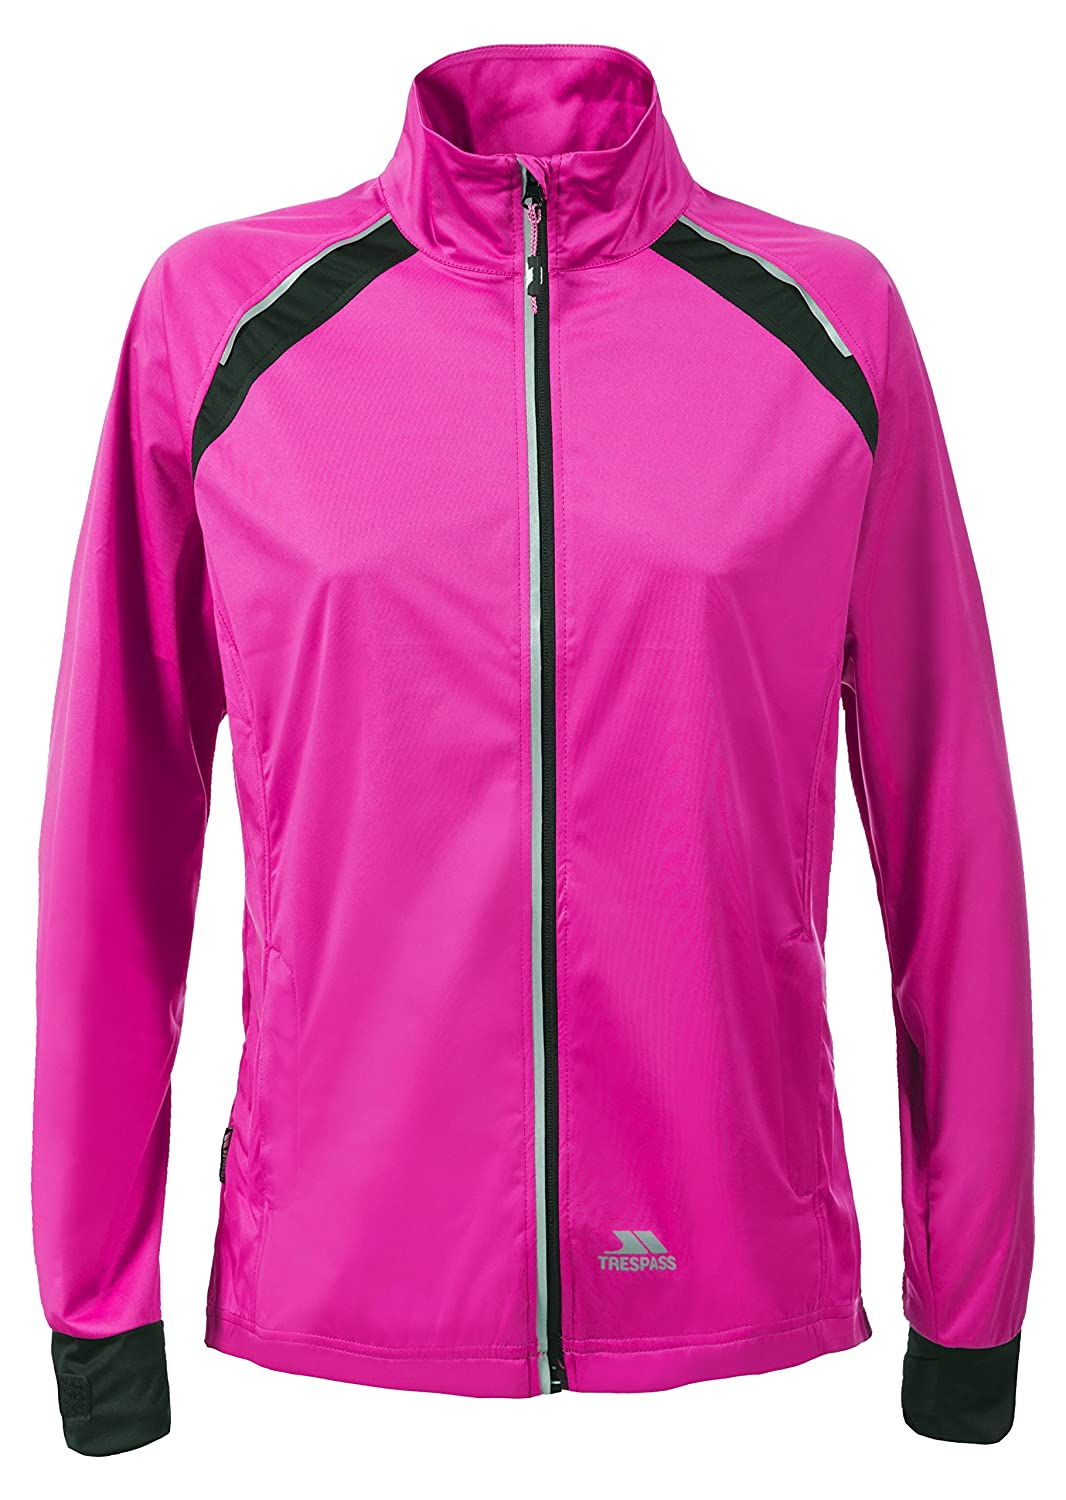 Trespass Women's Covered Active Jacket